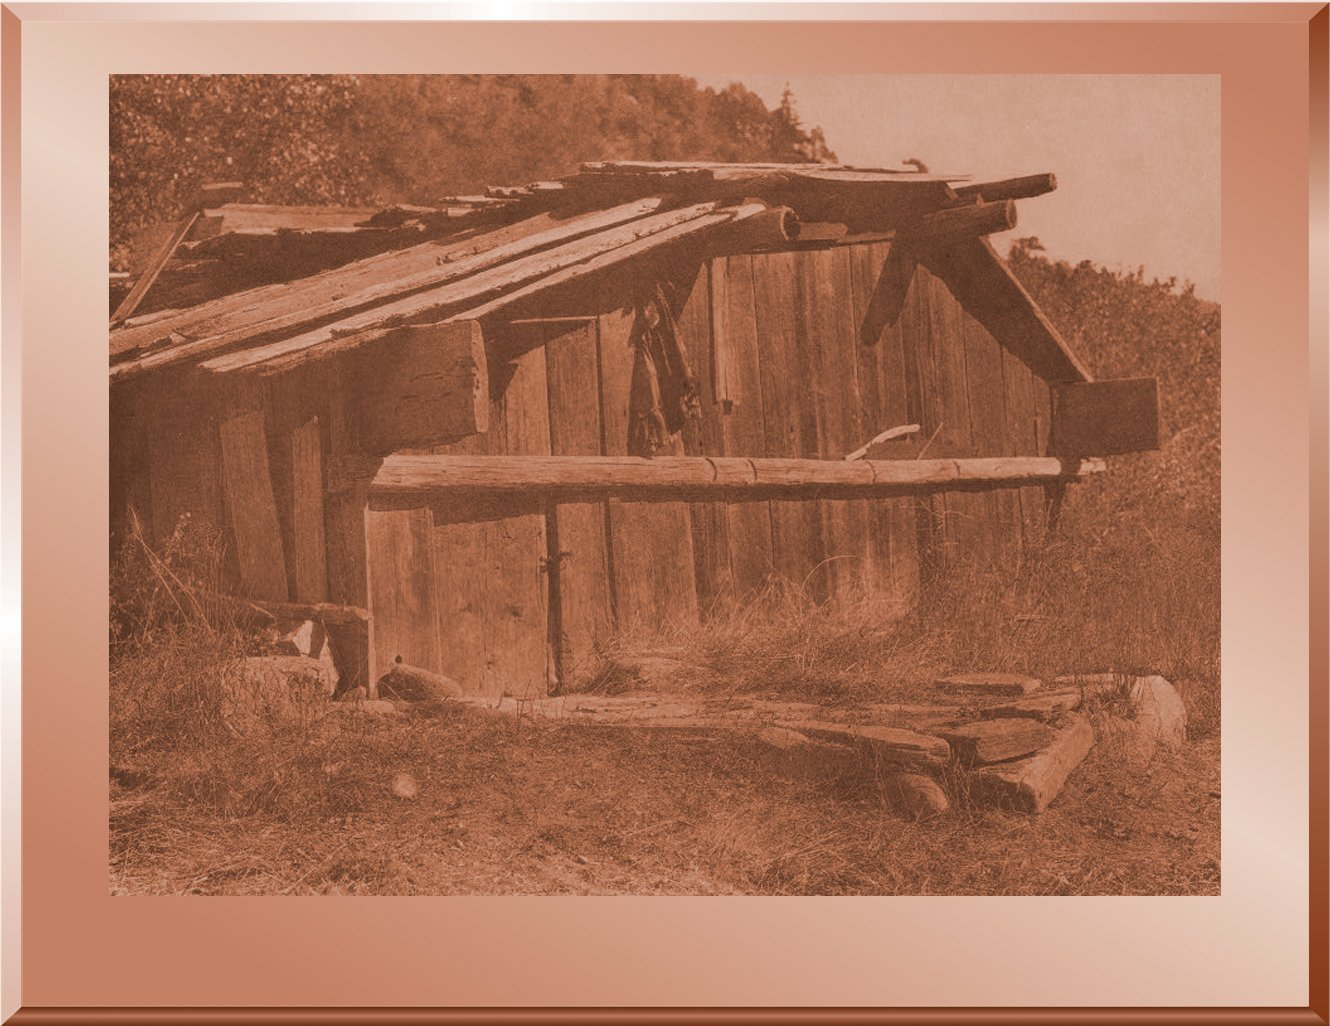 Yurok House on Klamath River